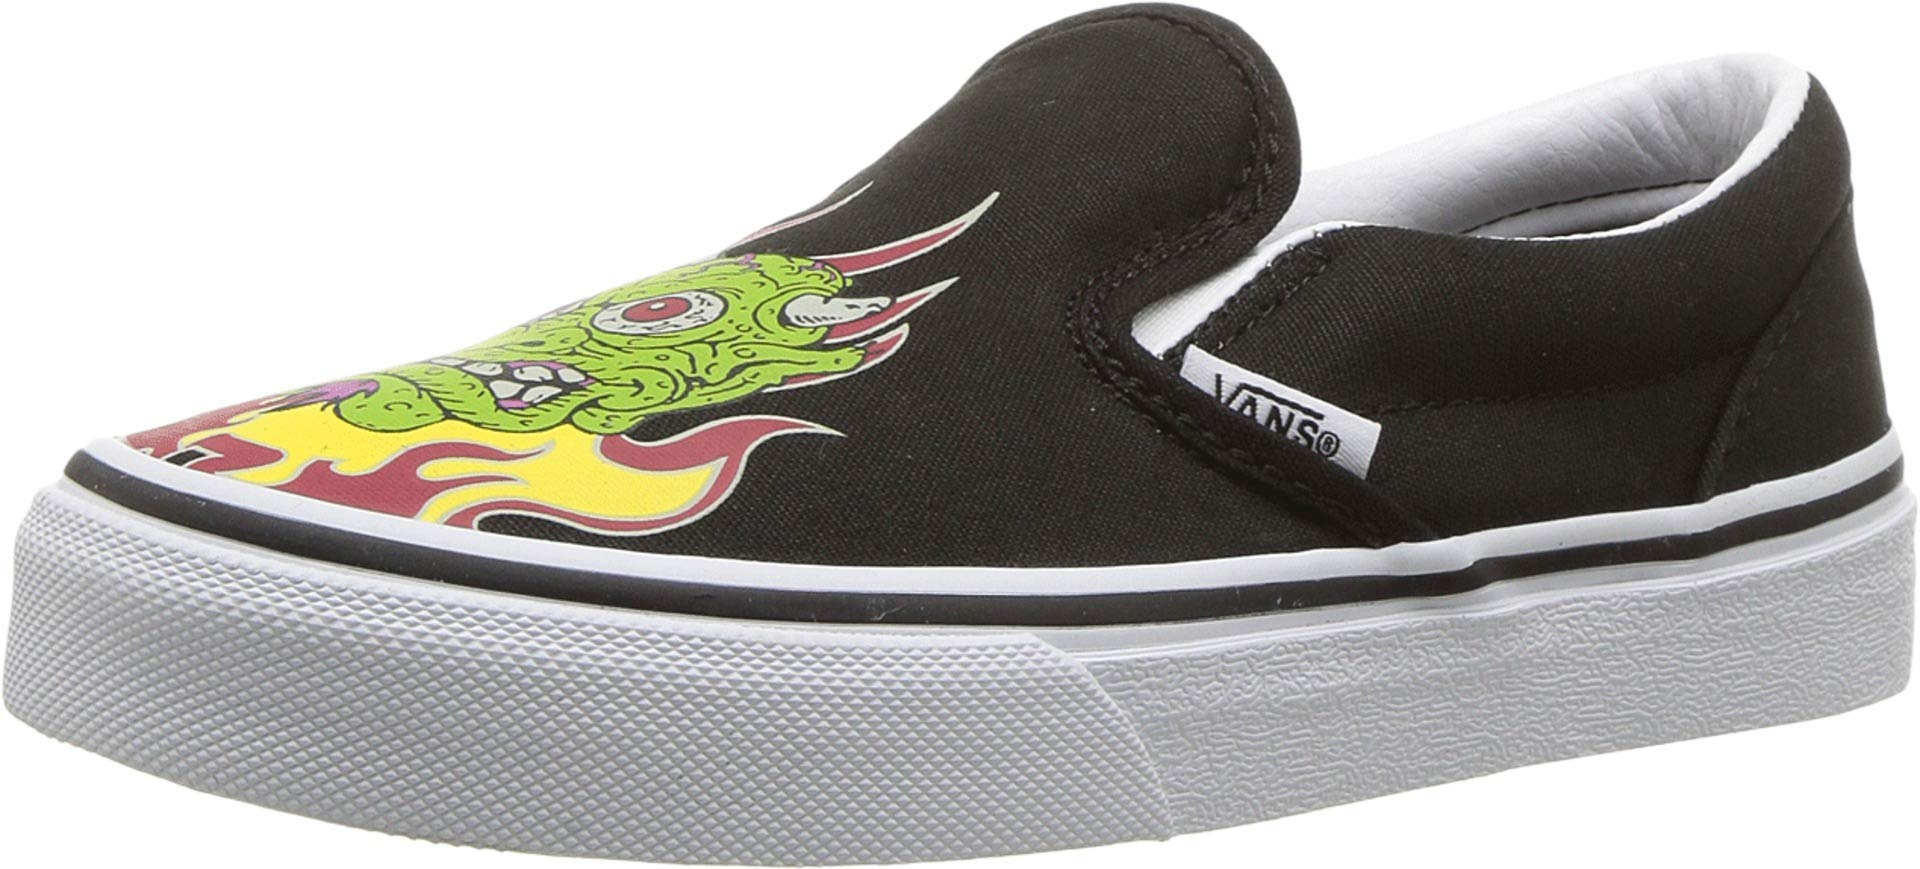 Vans Kids Boy's Classic Slip-On (Little Kid/Big Kid) (Demon Trolls) Black/True White 7 M US Big Kid